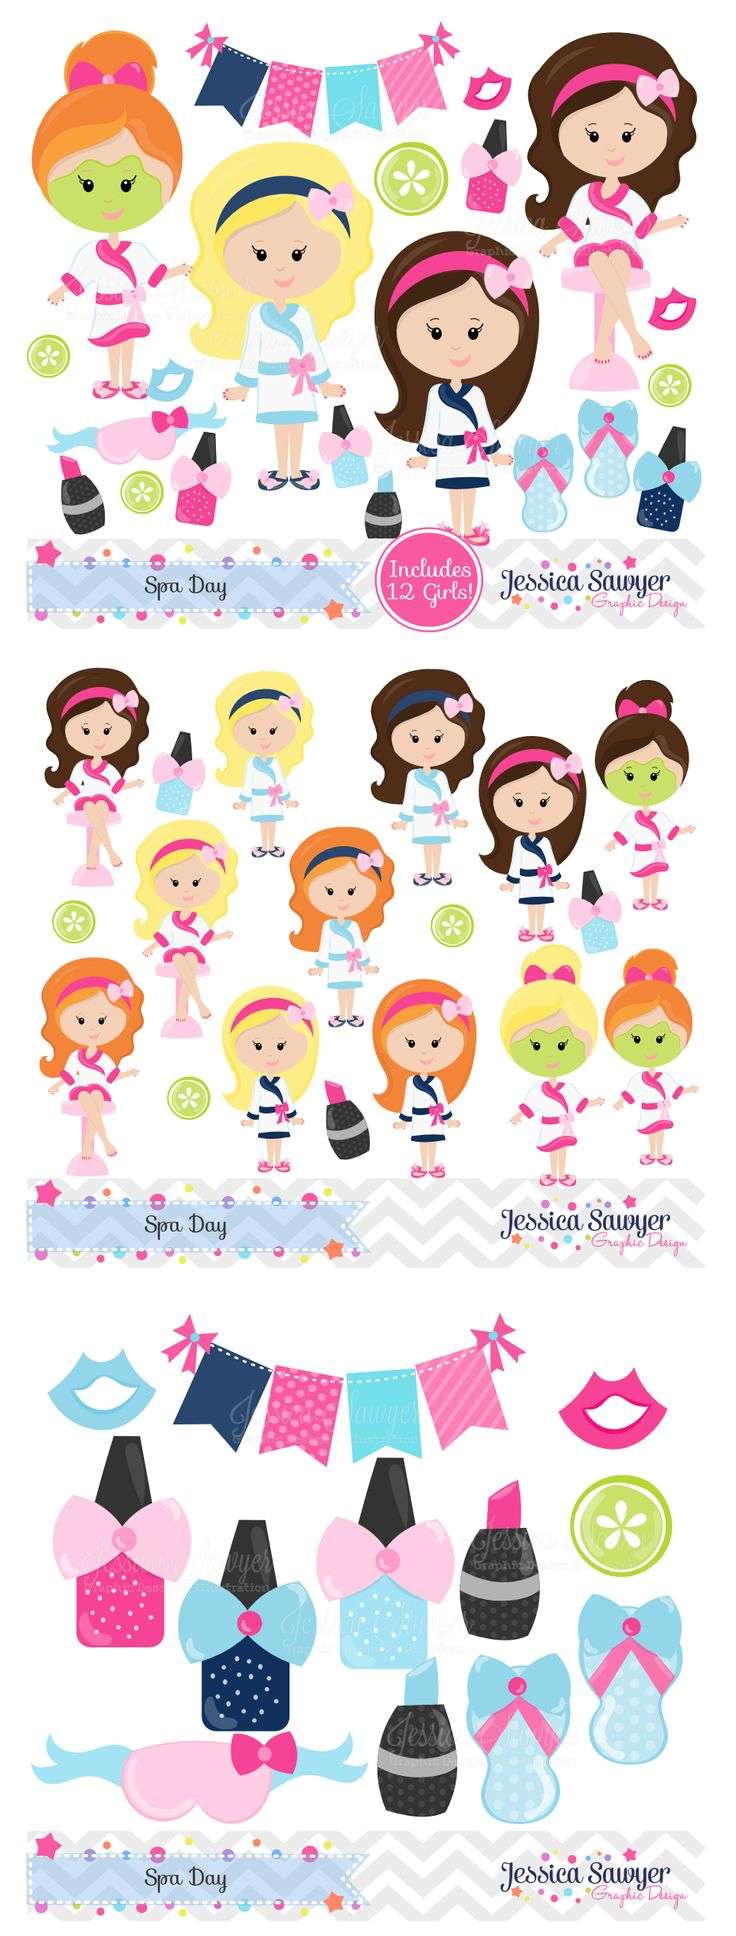 Spa Clipart and Vectors for a Spa Party. Personal and Commercial Use okay.